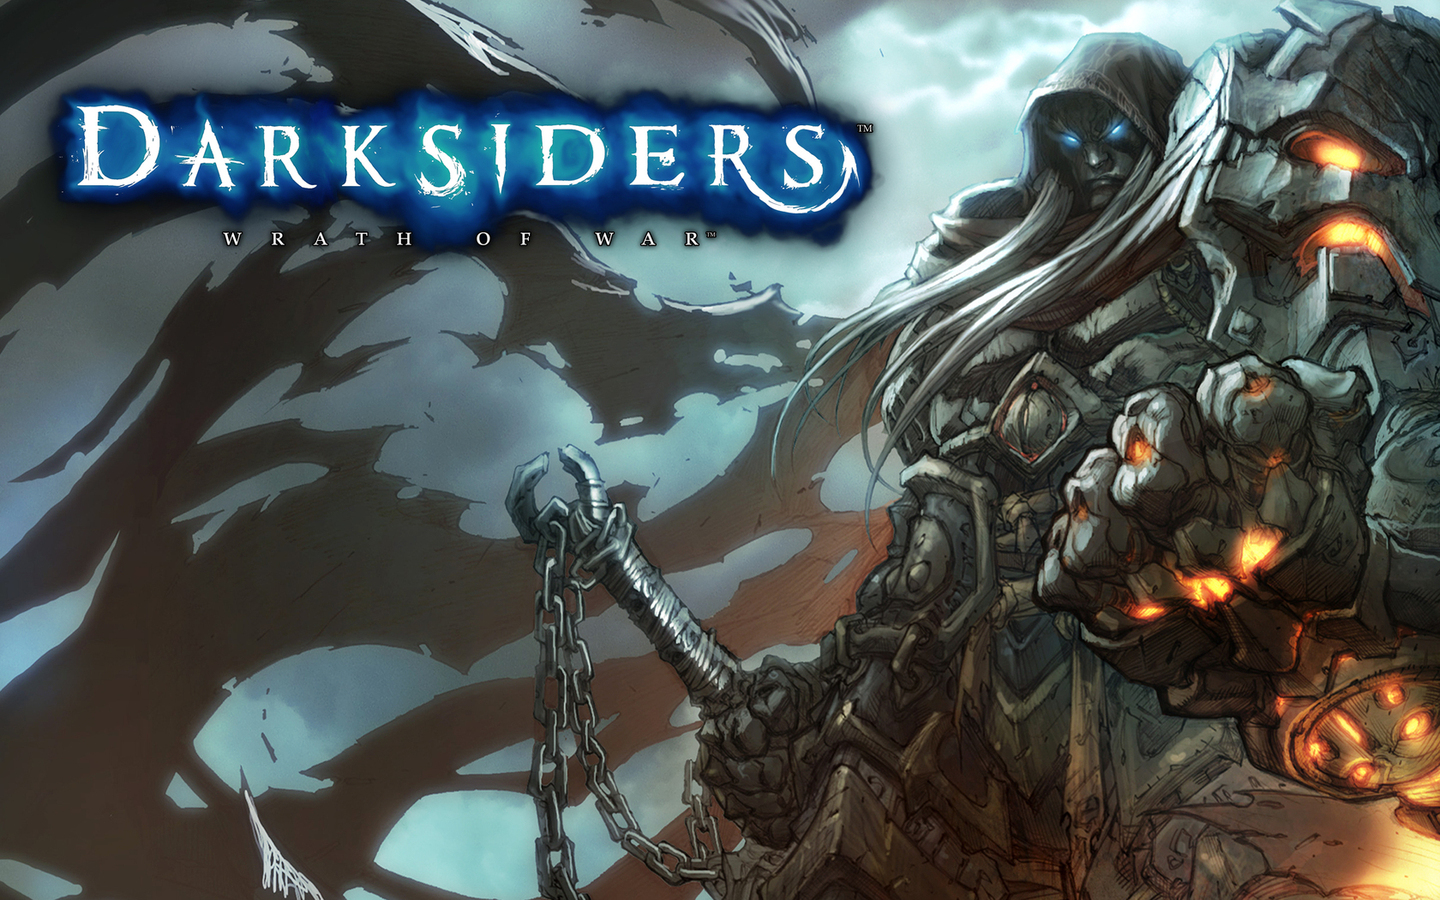 darksiders wallpaperjpg 1440x900